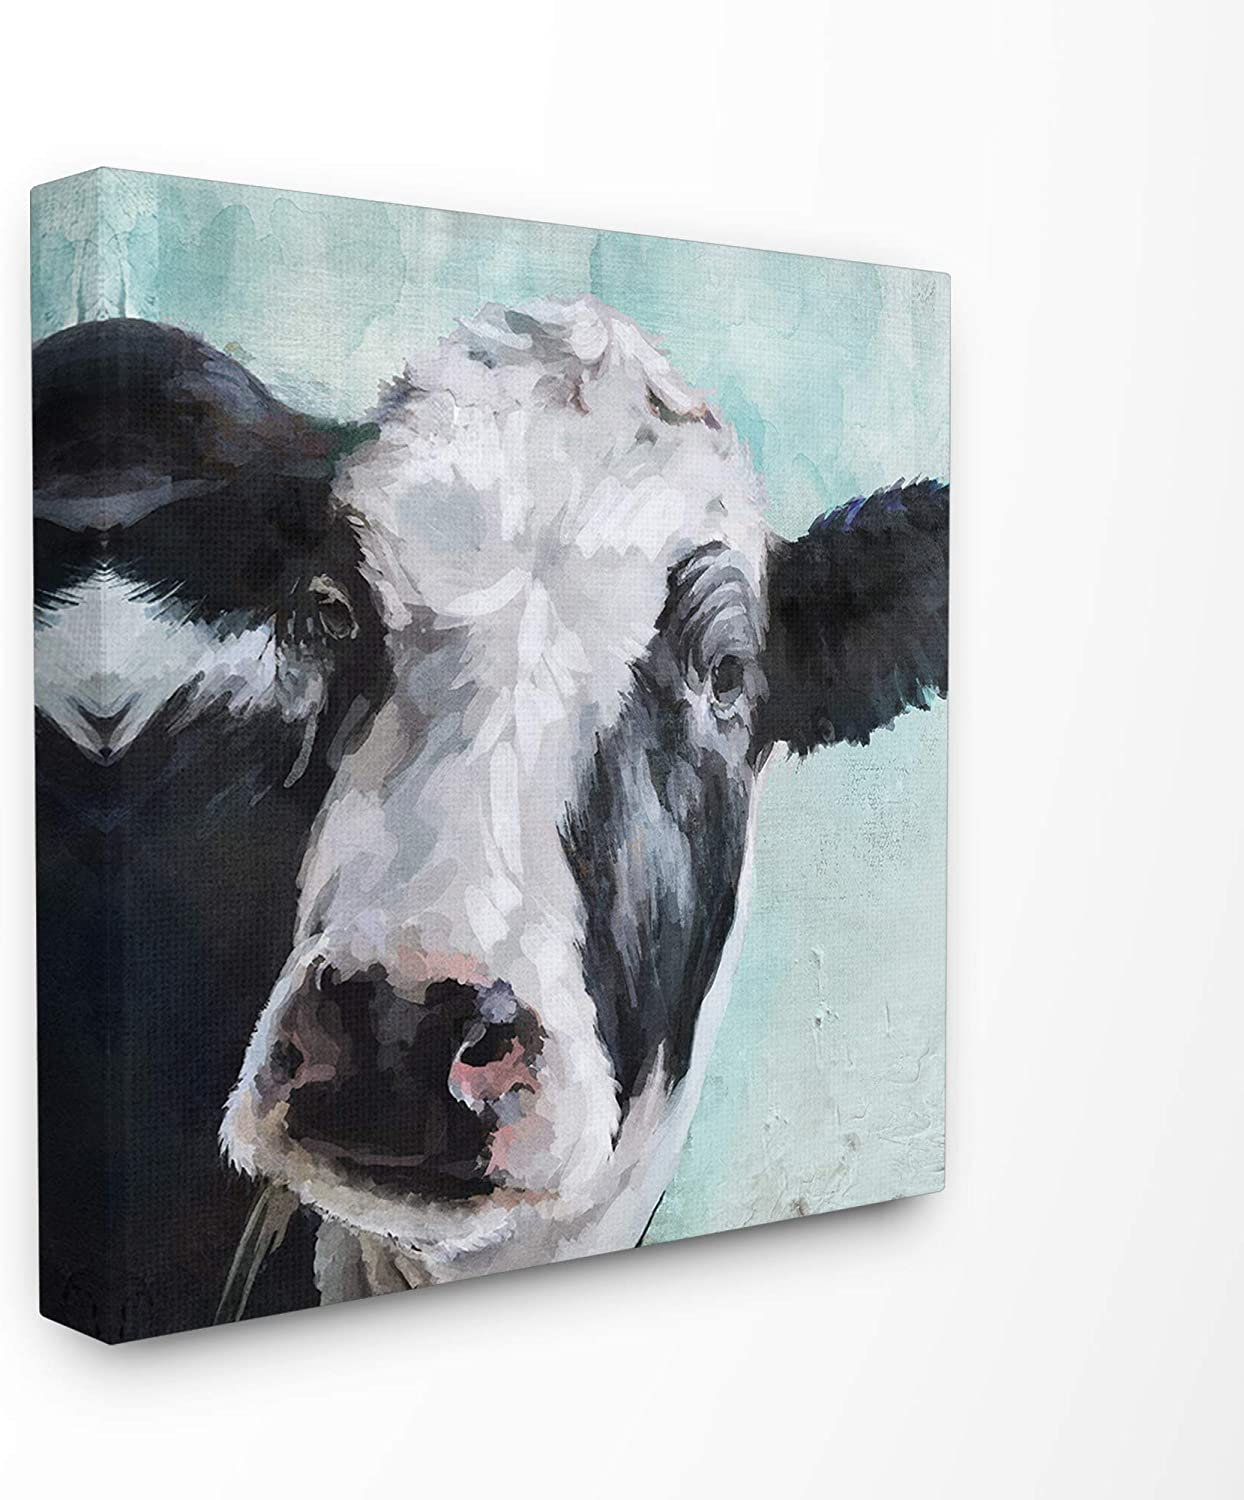 The Stupell Home Décor Collection Gentle Farm Cow Painting on bluee Stretched Canvas Wall Art, 24 x 24, Multi-color